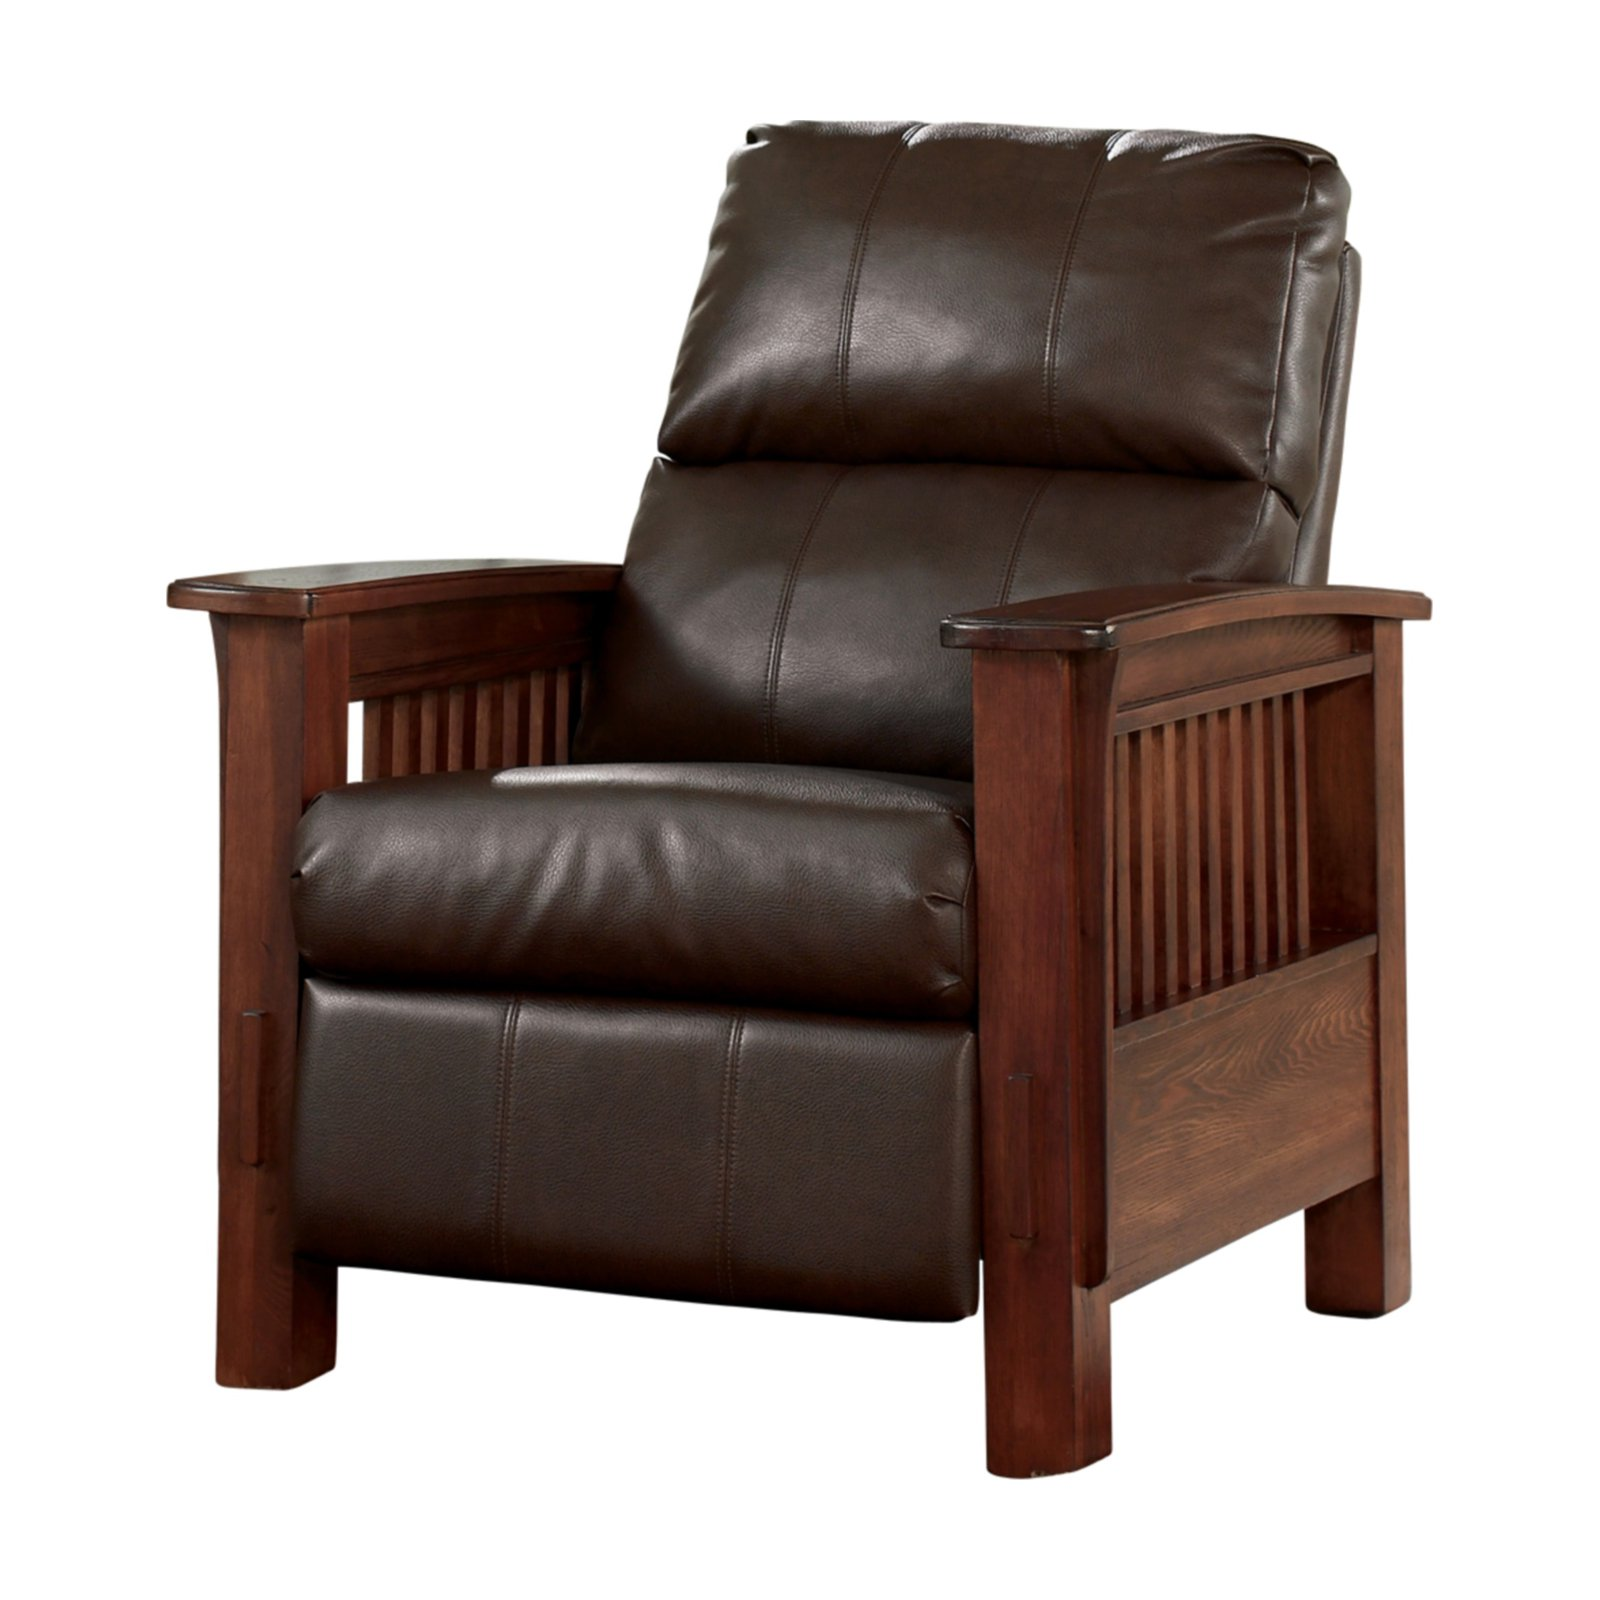 Signature Design by Ashley Santa Fe Mission Recliner